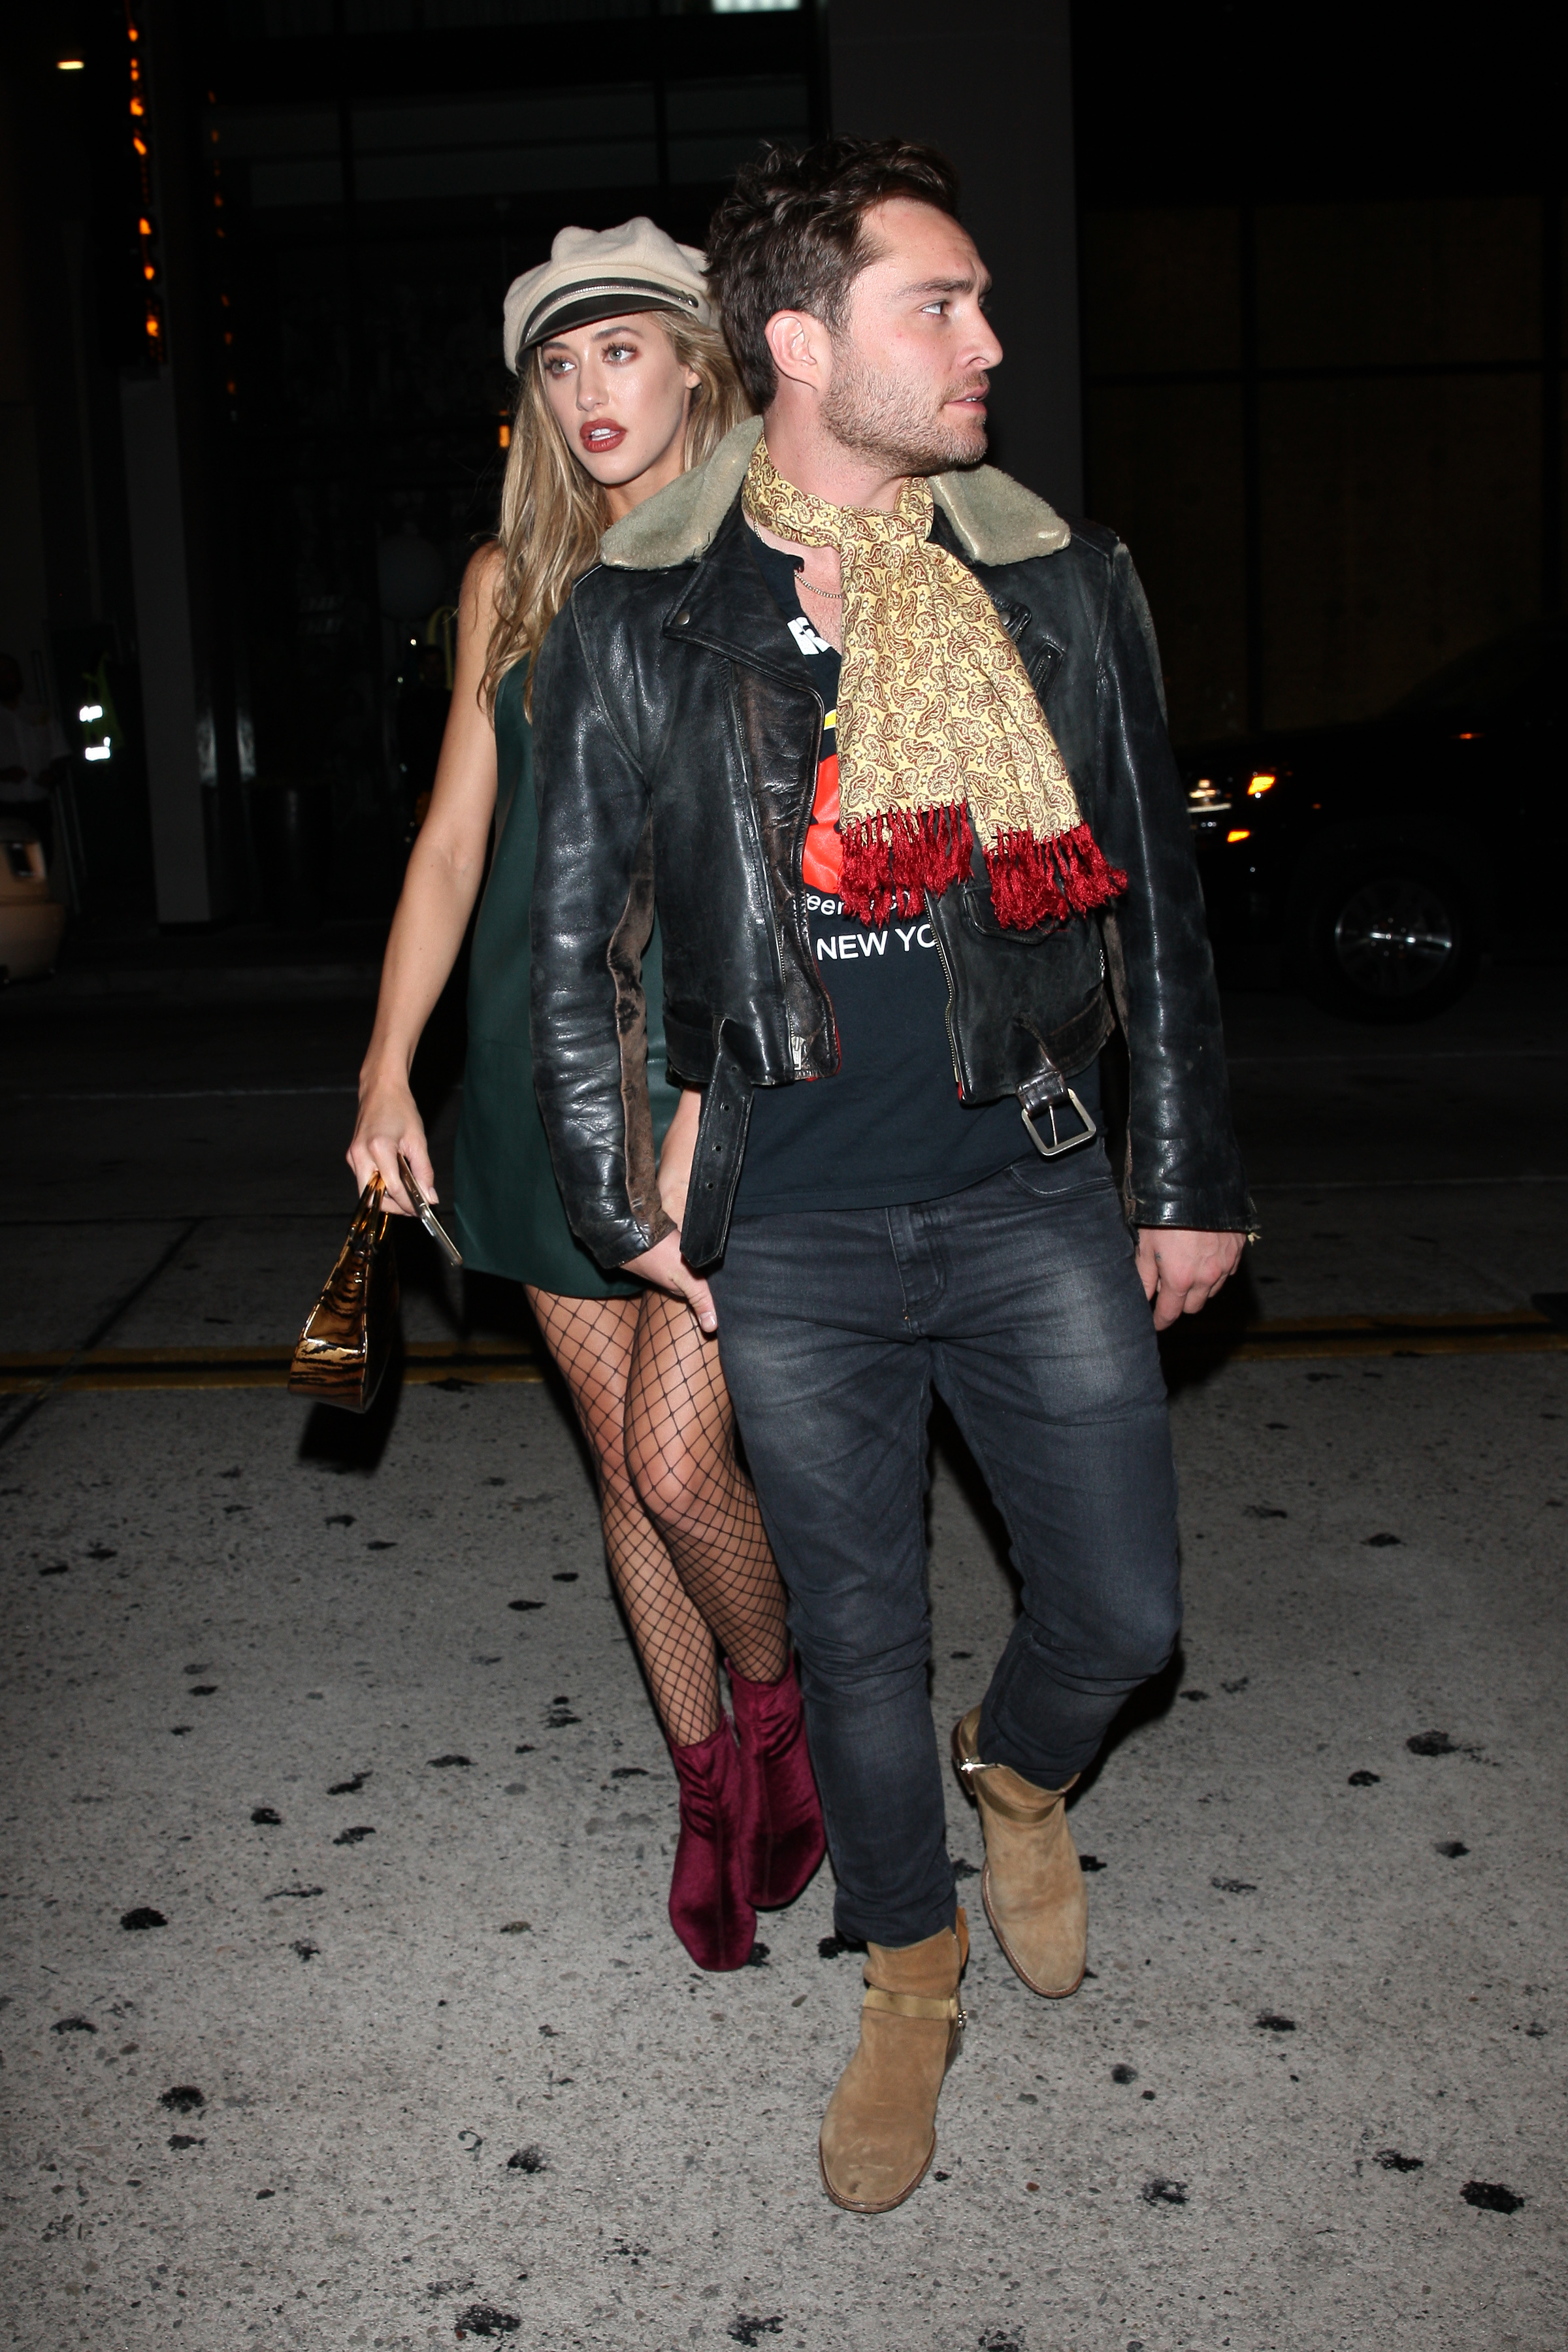 A fashionable Ed Westwick and his girlfriend hold hands as they leave Catch restaurant after having a romantic dinner in West Hollywood <P> Pictured: Ed Westwick <B>Ref: SPL1582961  190917  </B><BR/> Picture by: Photographer Group / Splash News<BR/> </P><P> <B>Splash News and Pictures</B><BR/> Los Angeles:310-821-2666<BR/> New York:212-619-2666<BR/> London:870-934-2666<BR/> <span id=